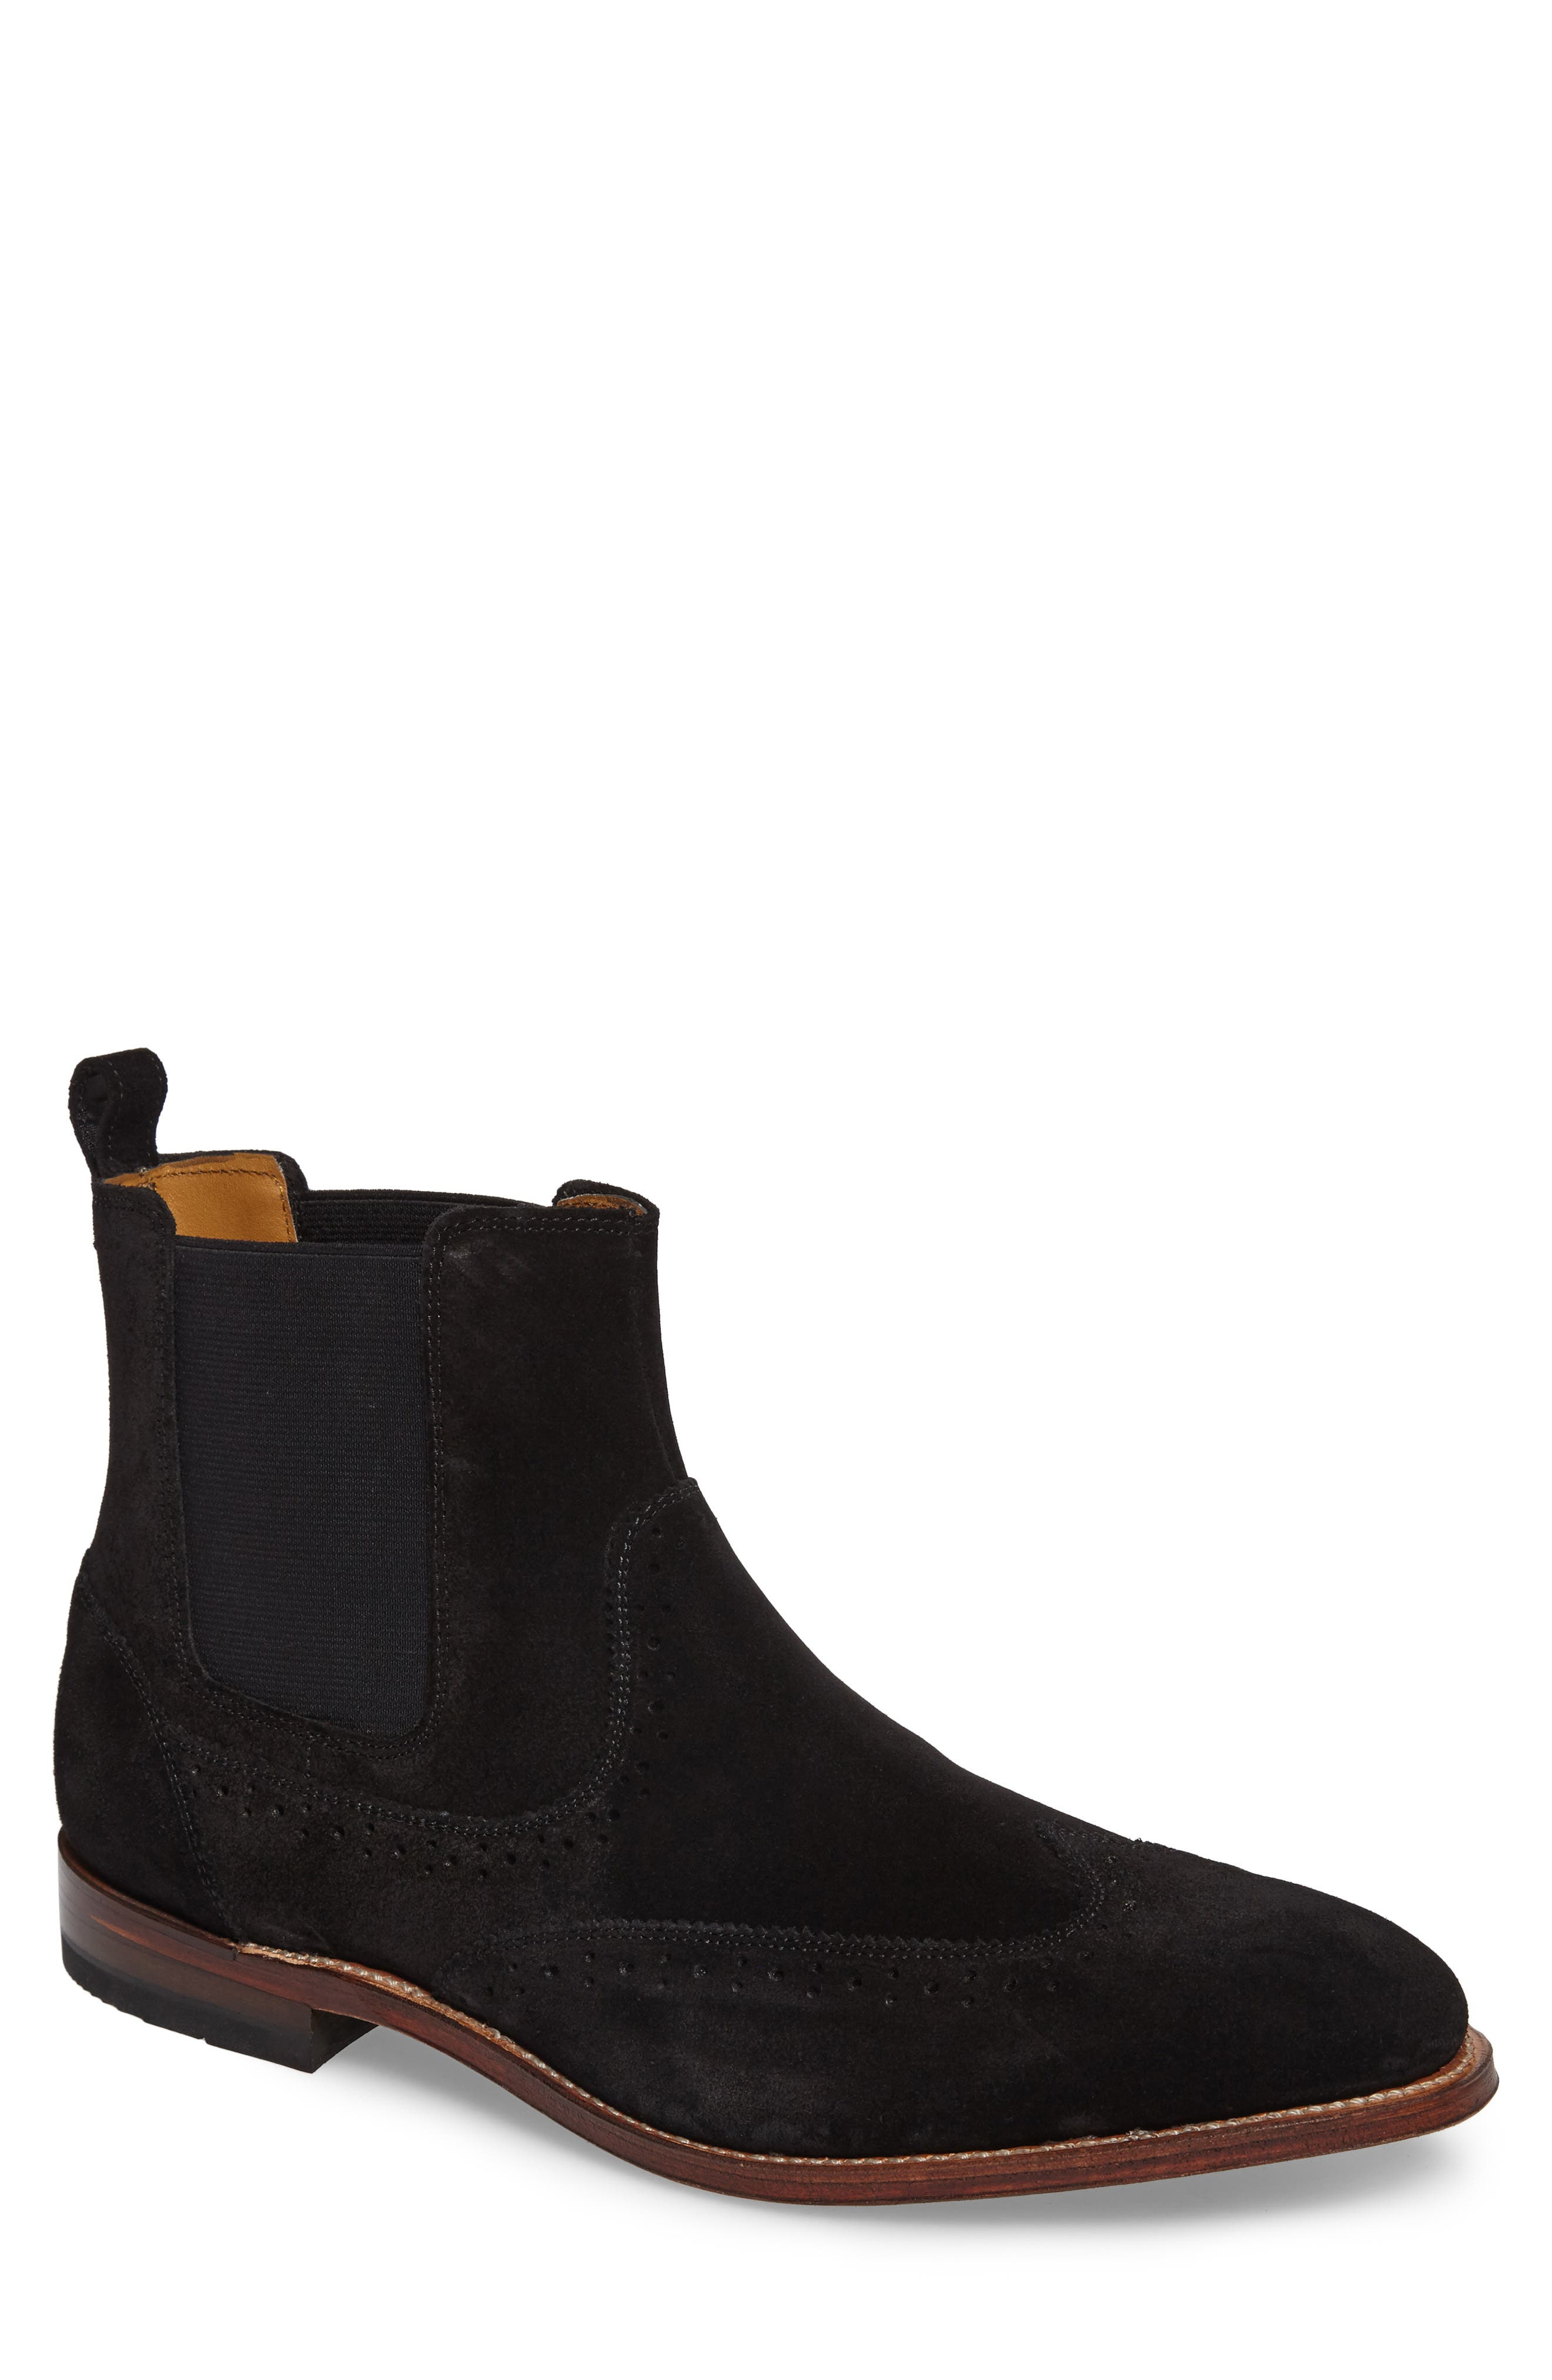 Madison II Wingtip Chelsea Boot,                             Main thumbnail 1, color,                             BLACK SUEDE